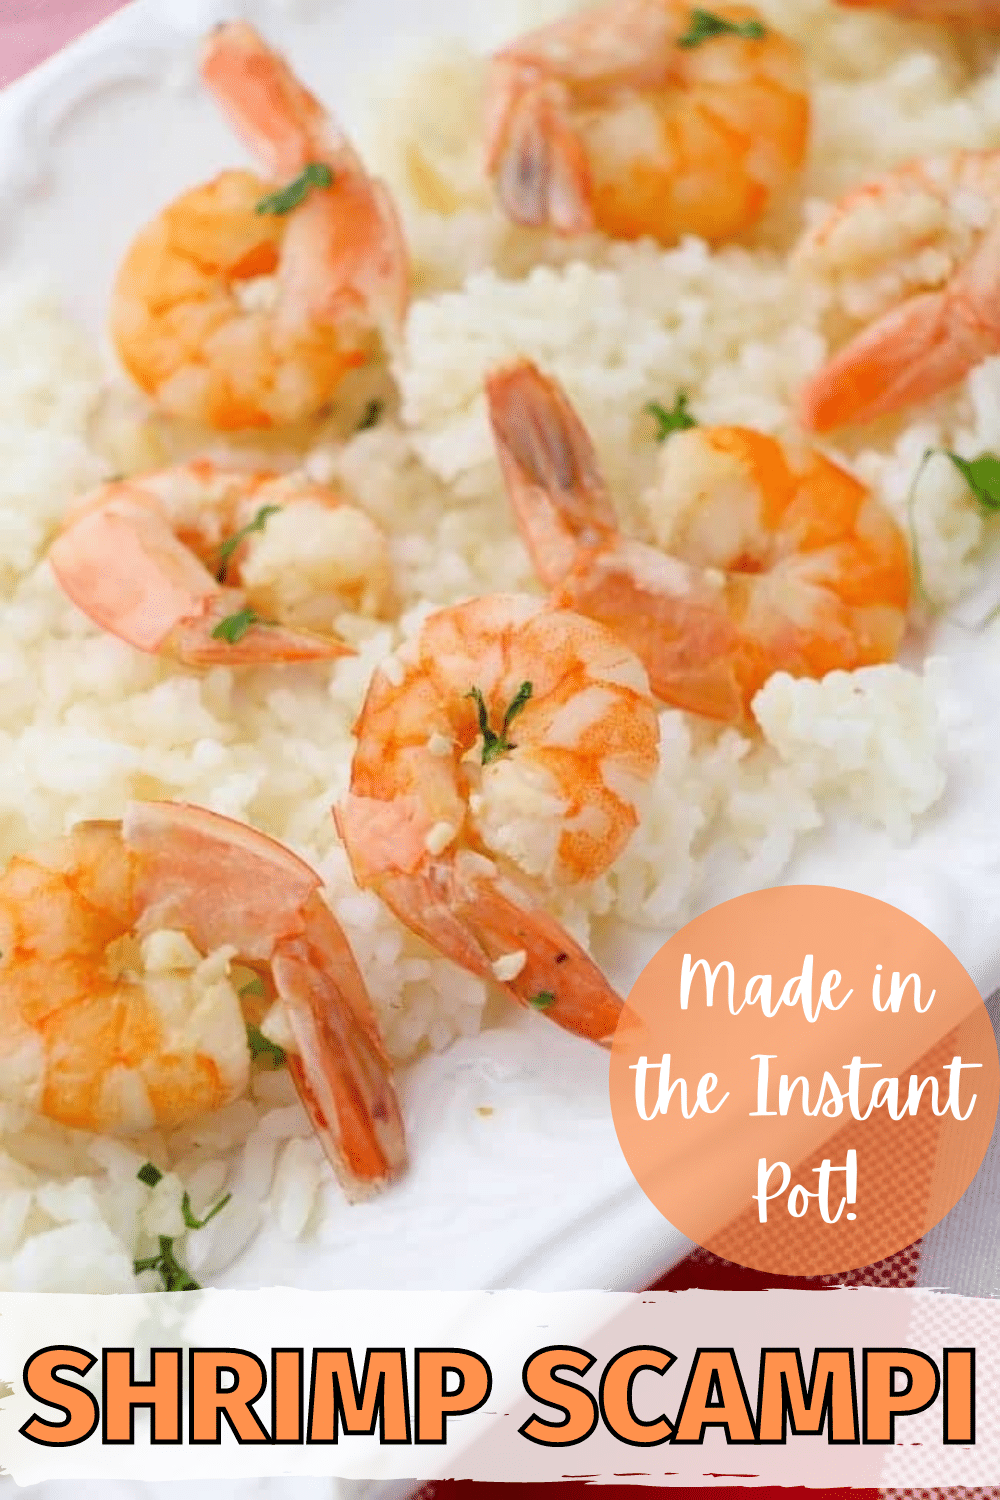 This Instant Pot Shrimp Scampi is quick and easy and perfect served over rice or pasta. So much lemony garlic flavor, so little work! #instantpot #pressurecooker #shrimpscampi #shrimp via @wondermomwannab